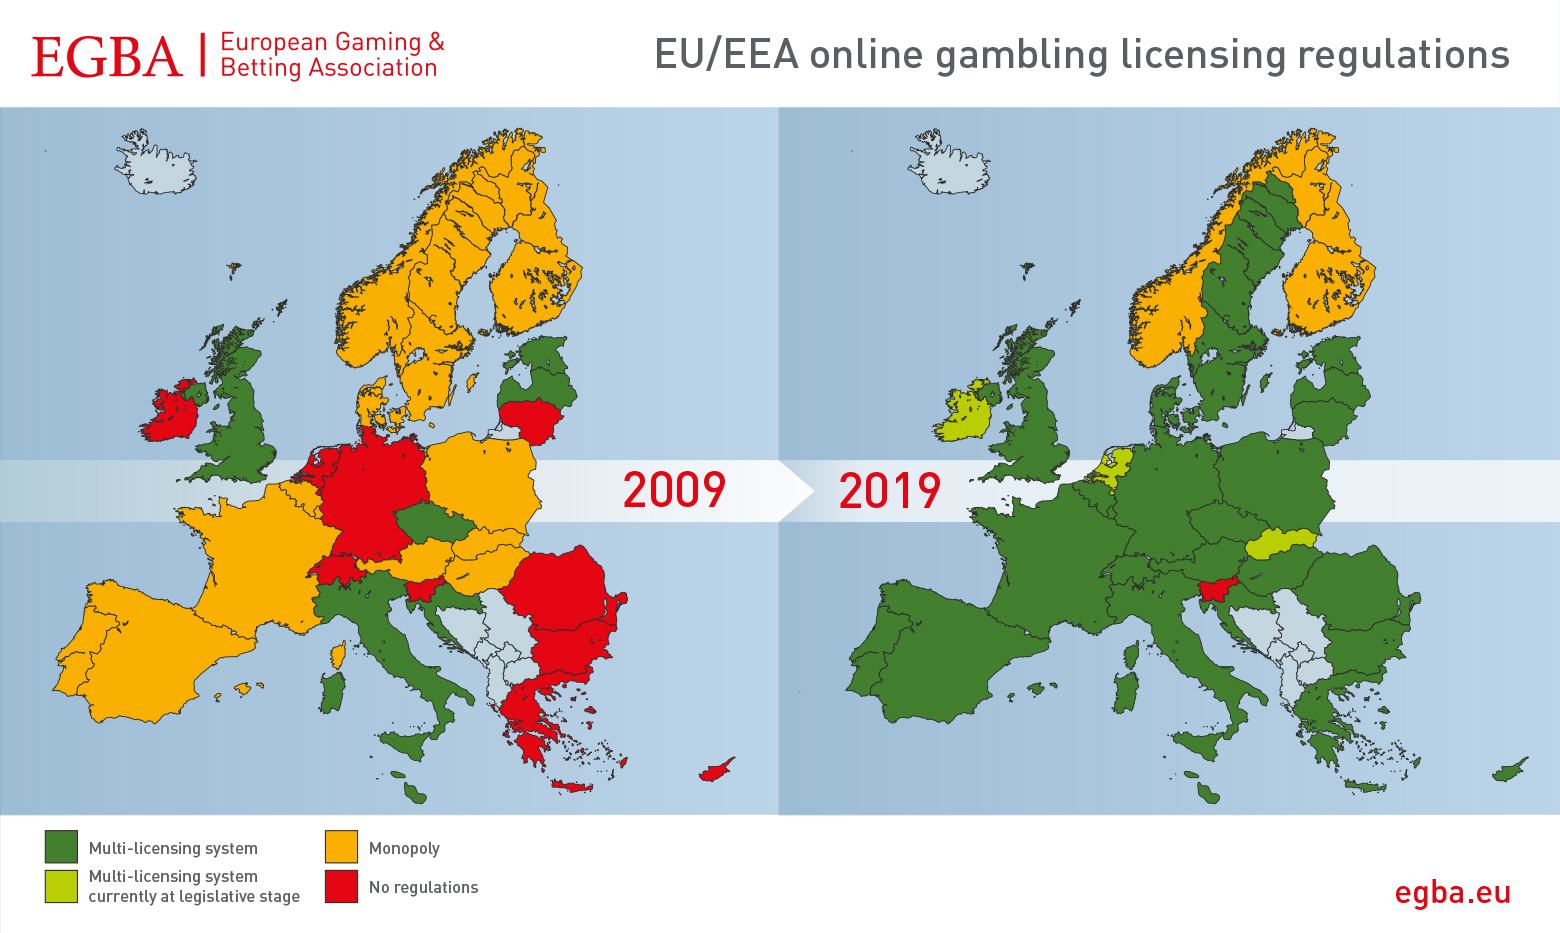 Multi-licensing Is Europe's Preferred Choice Of Online Gambling Licensing System